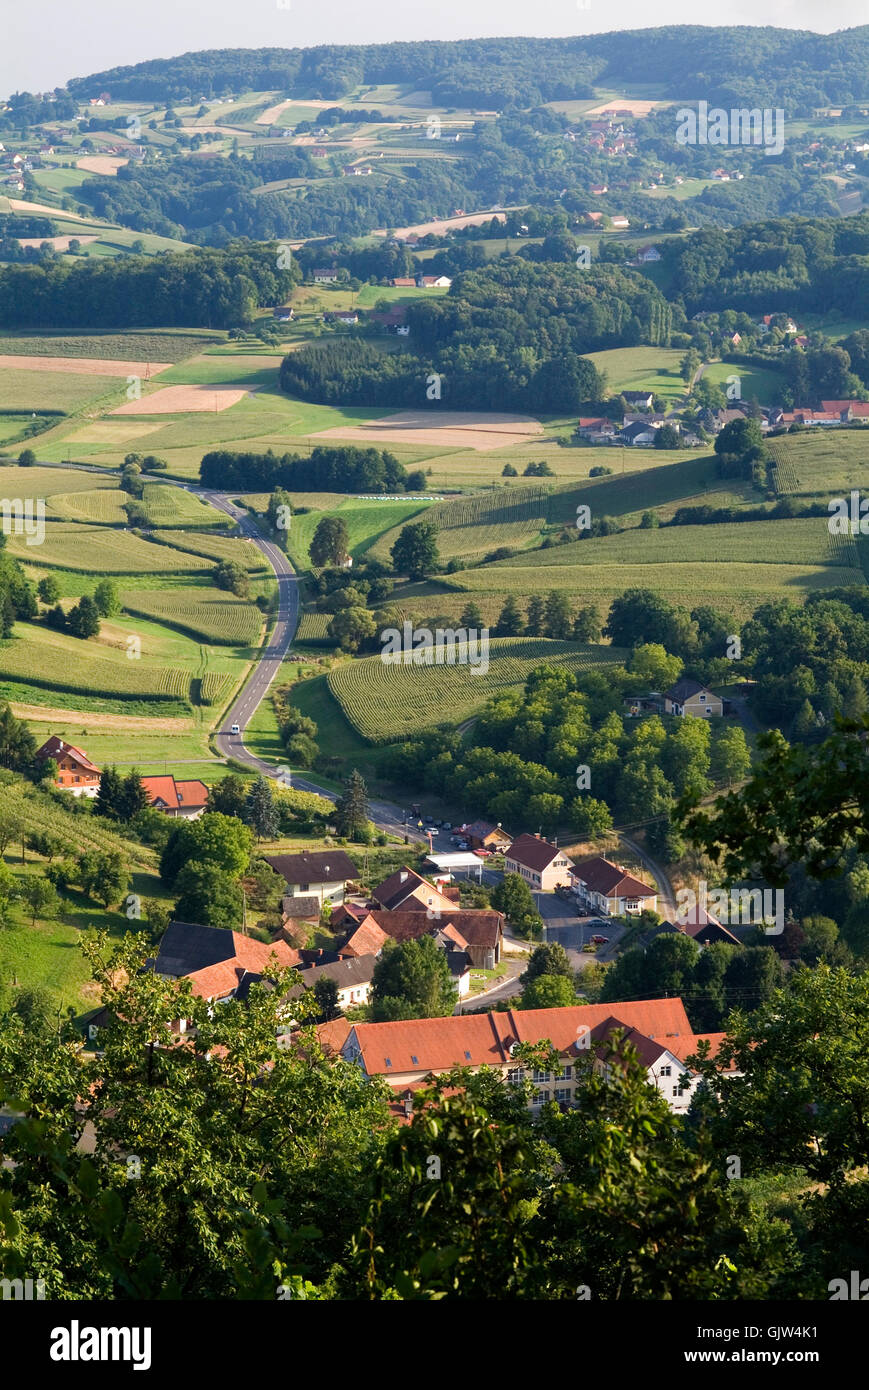 wine hills of styria - Stock Image